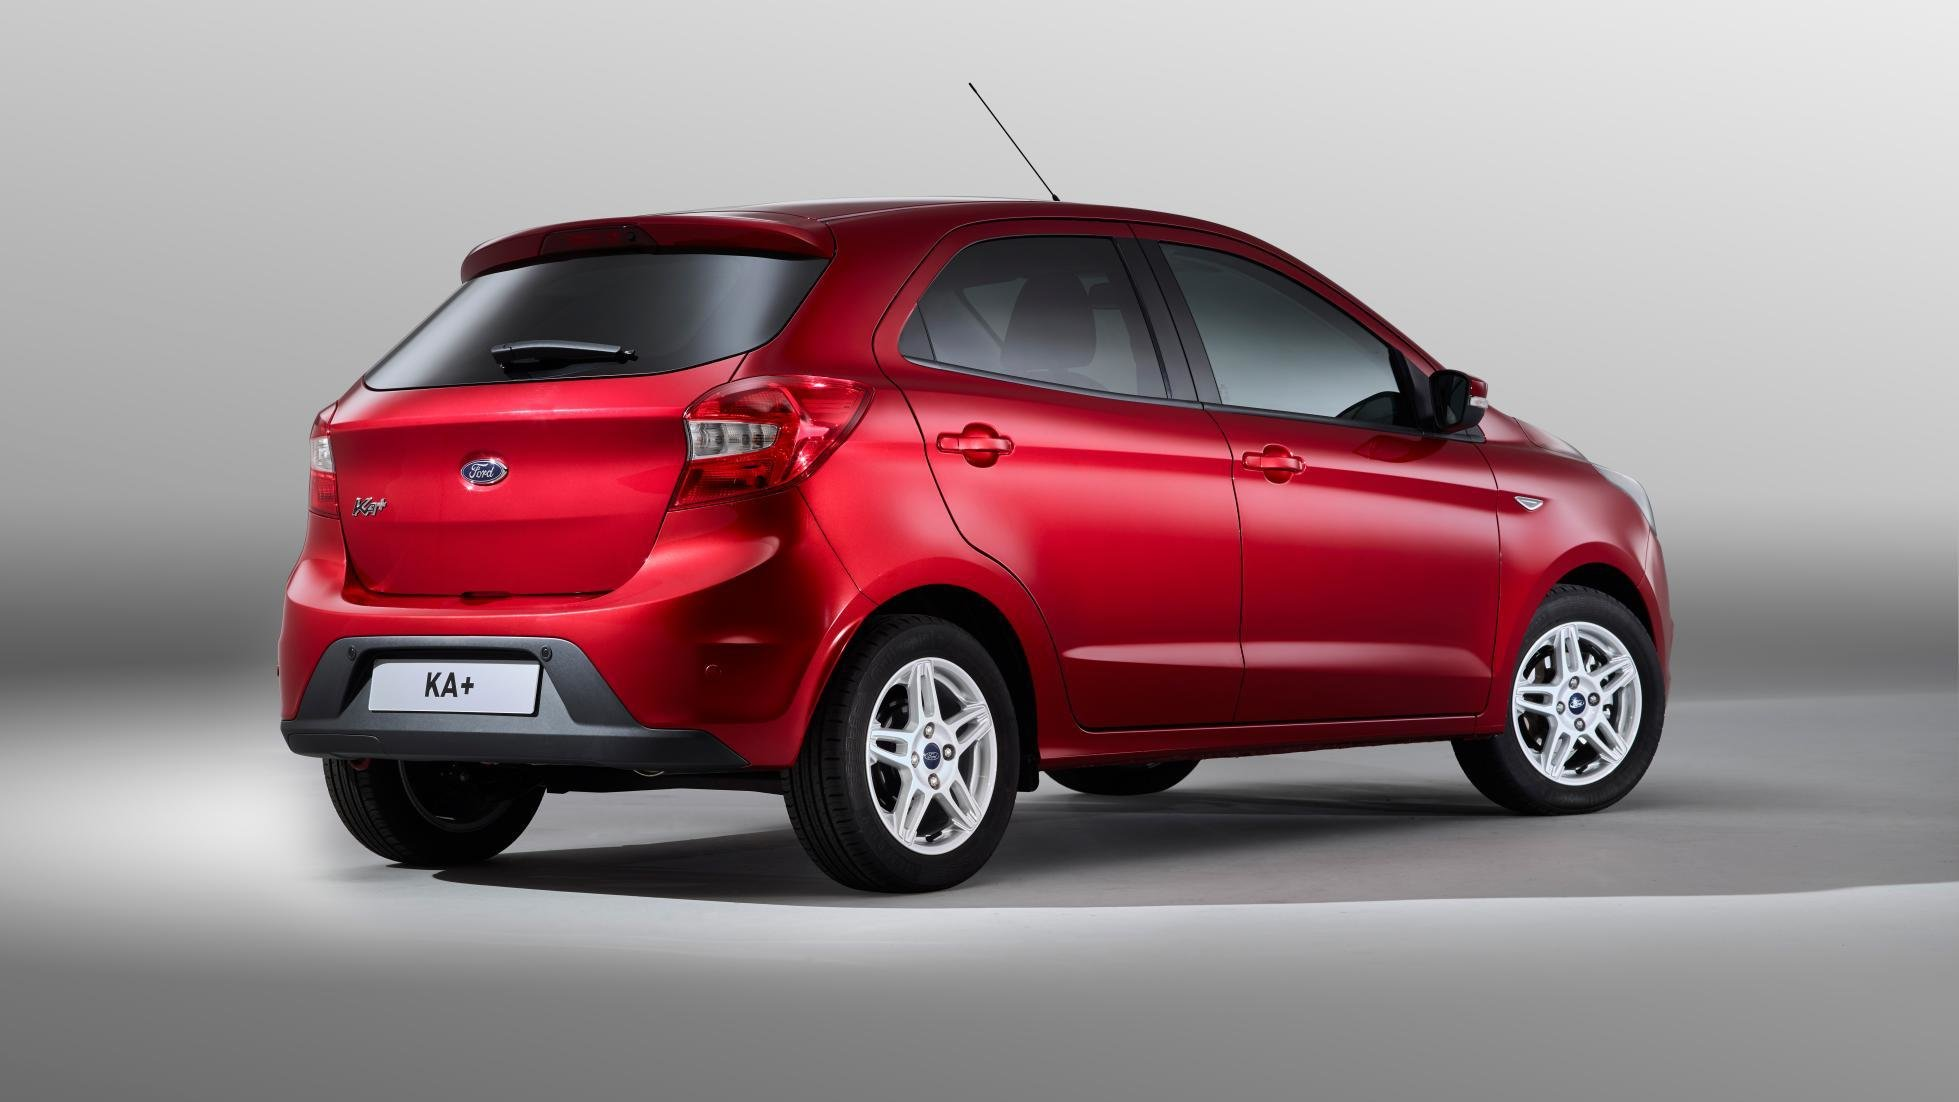 Latest Ford Ka Plus 2016 Exterior Image Gallery Pictures Photos Free Download